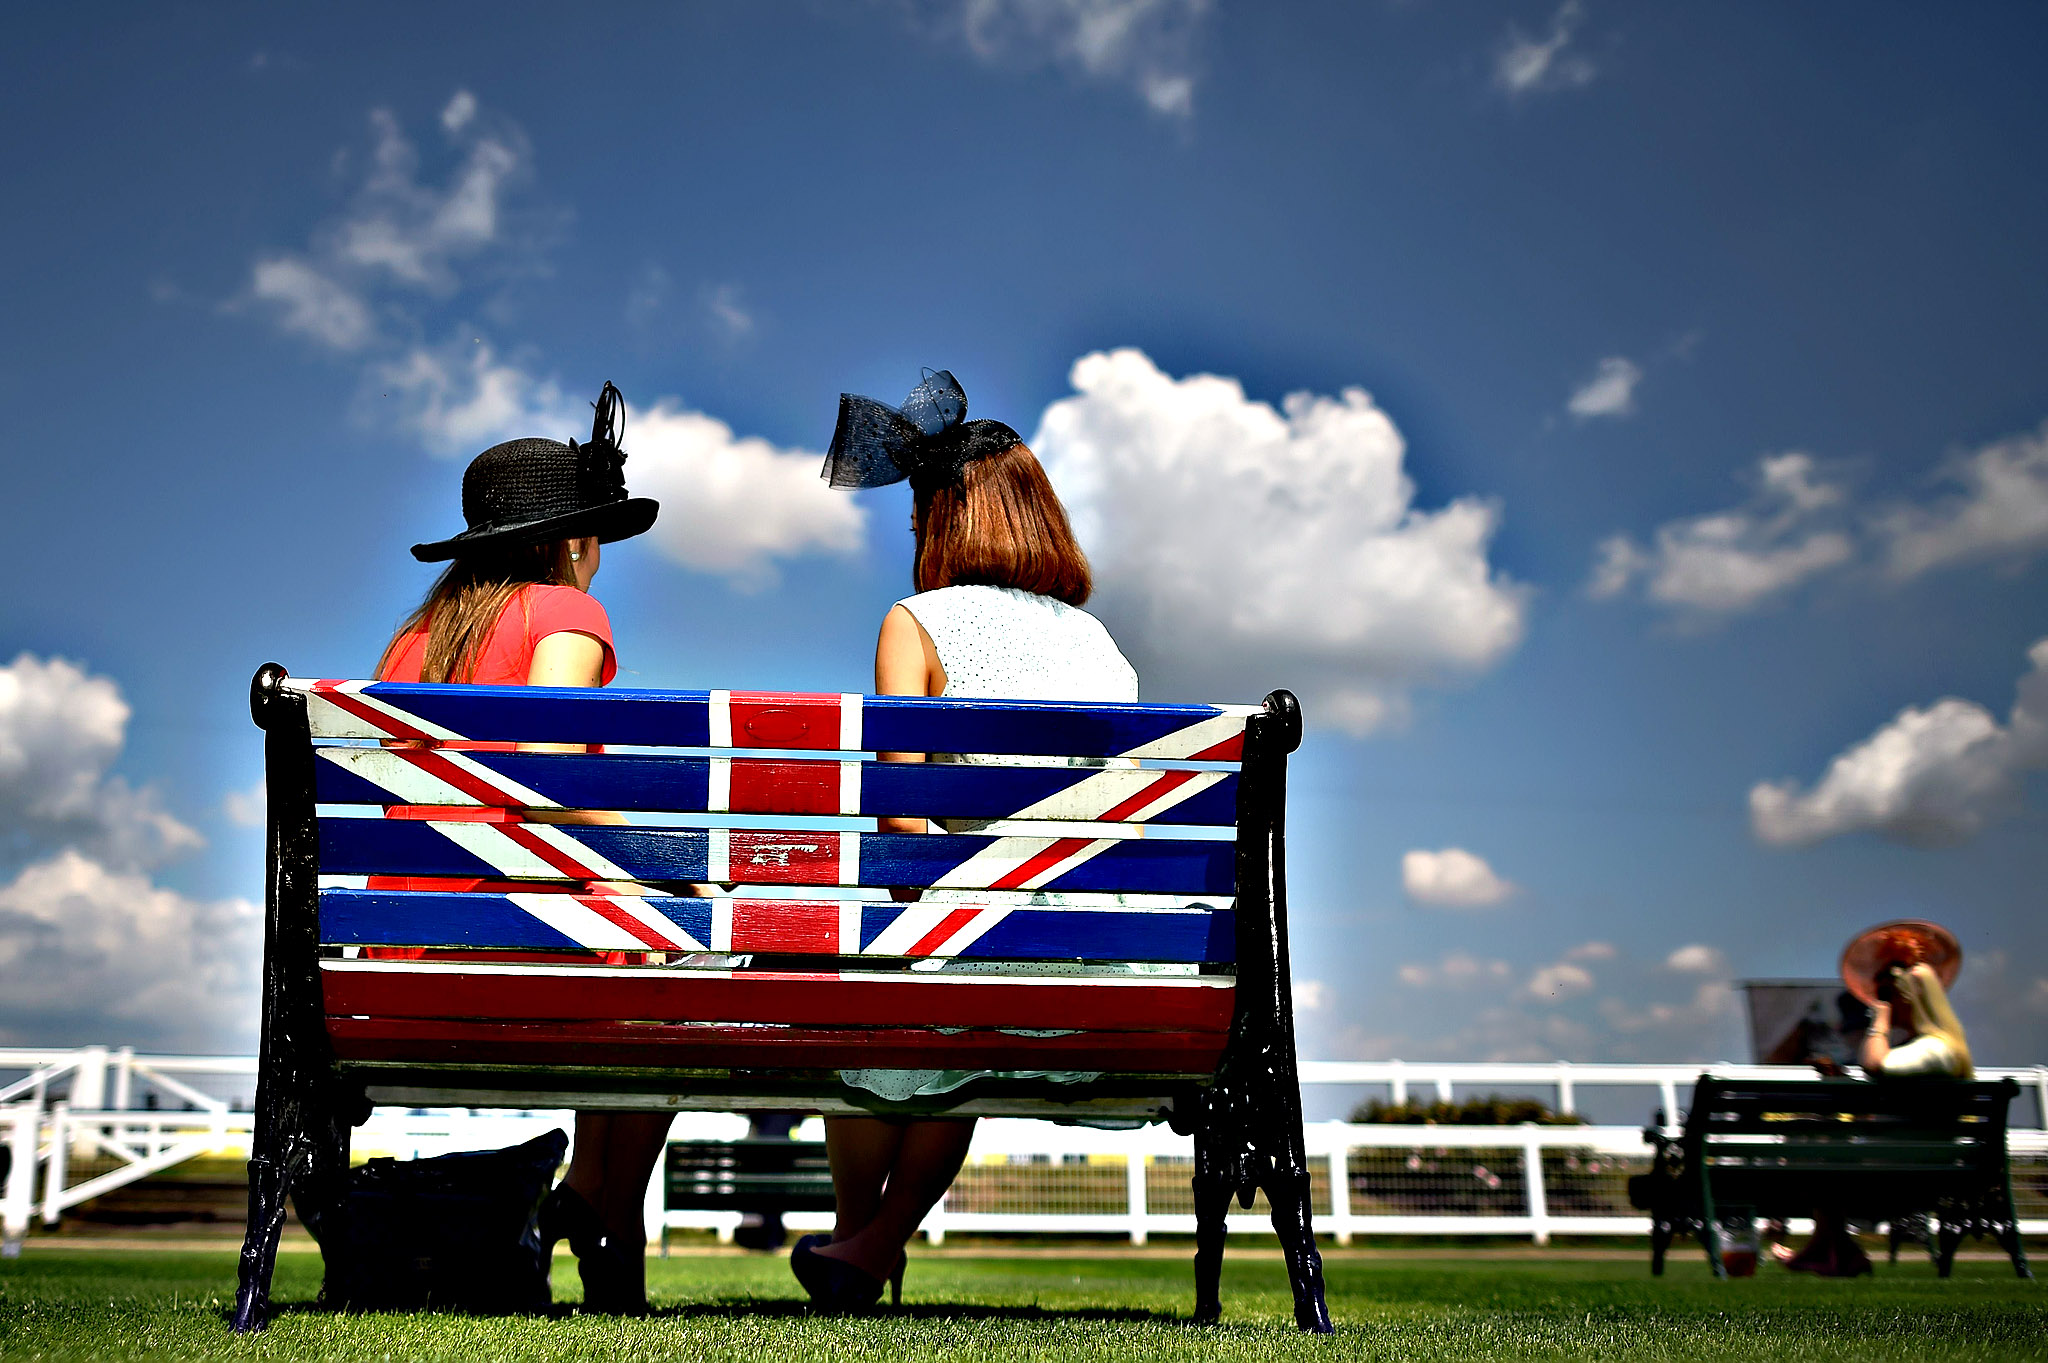 Race-goers relax on a bench displaying the Union Flag on the first day of the annual Royal Ascot horse racing event near Windsor, west of London, on June 16, 2015.